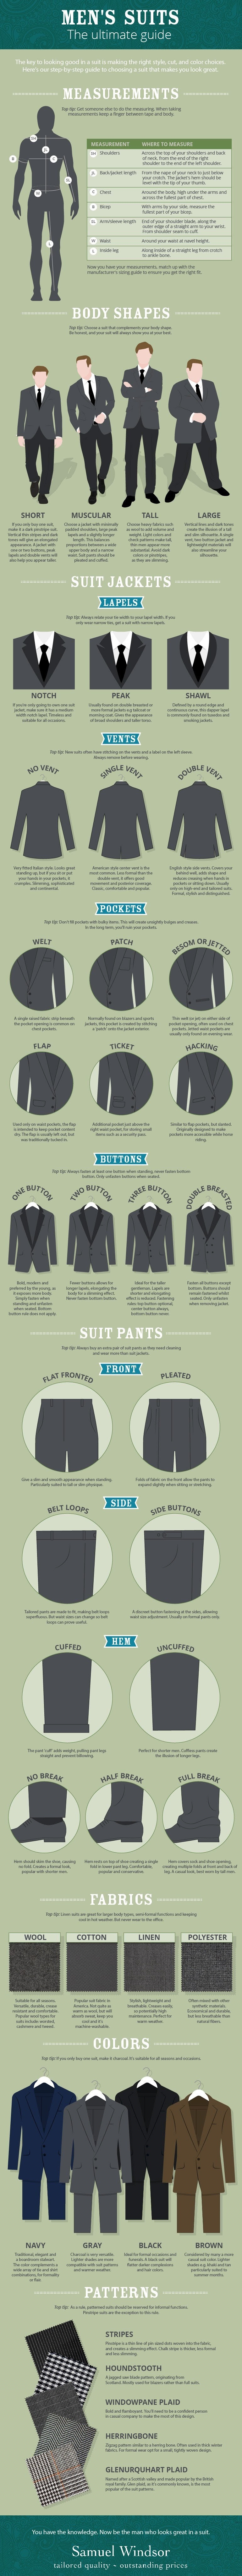 Men's suits – the ultimate guide